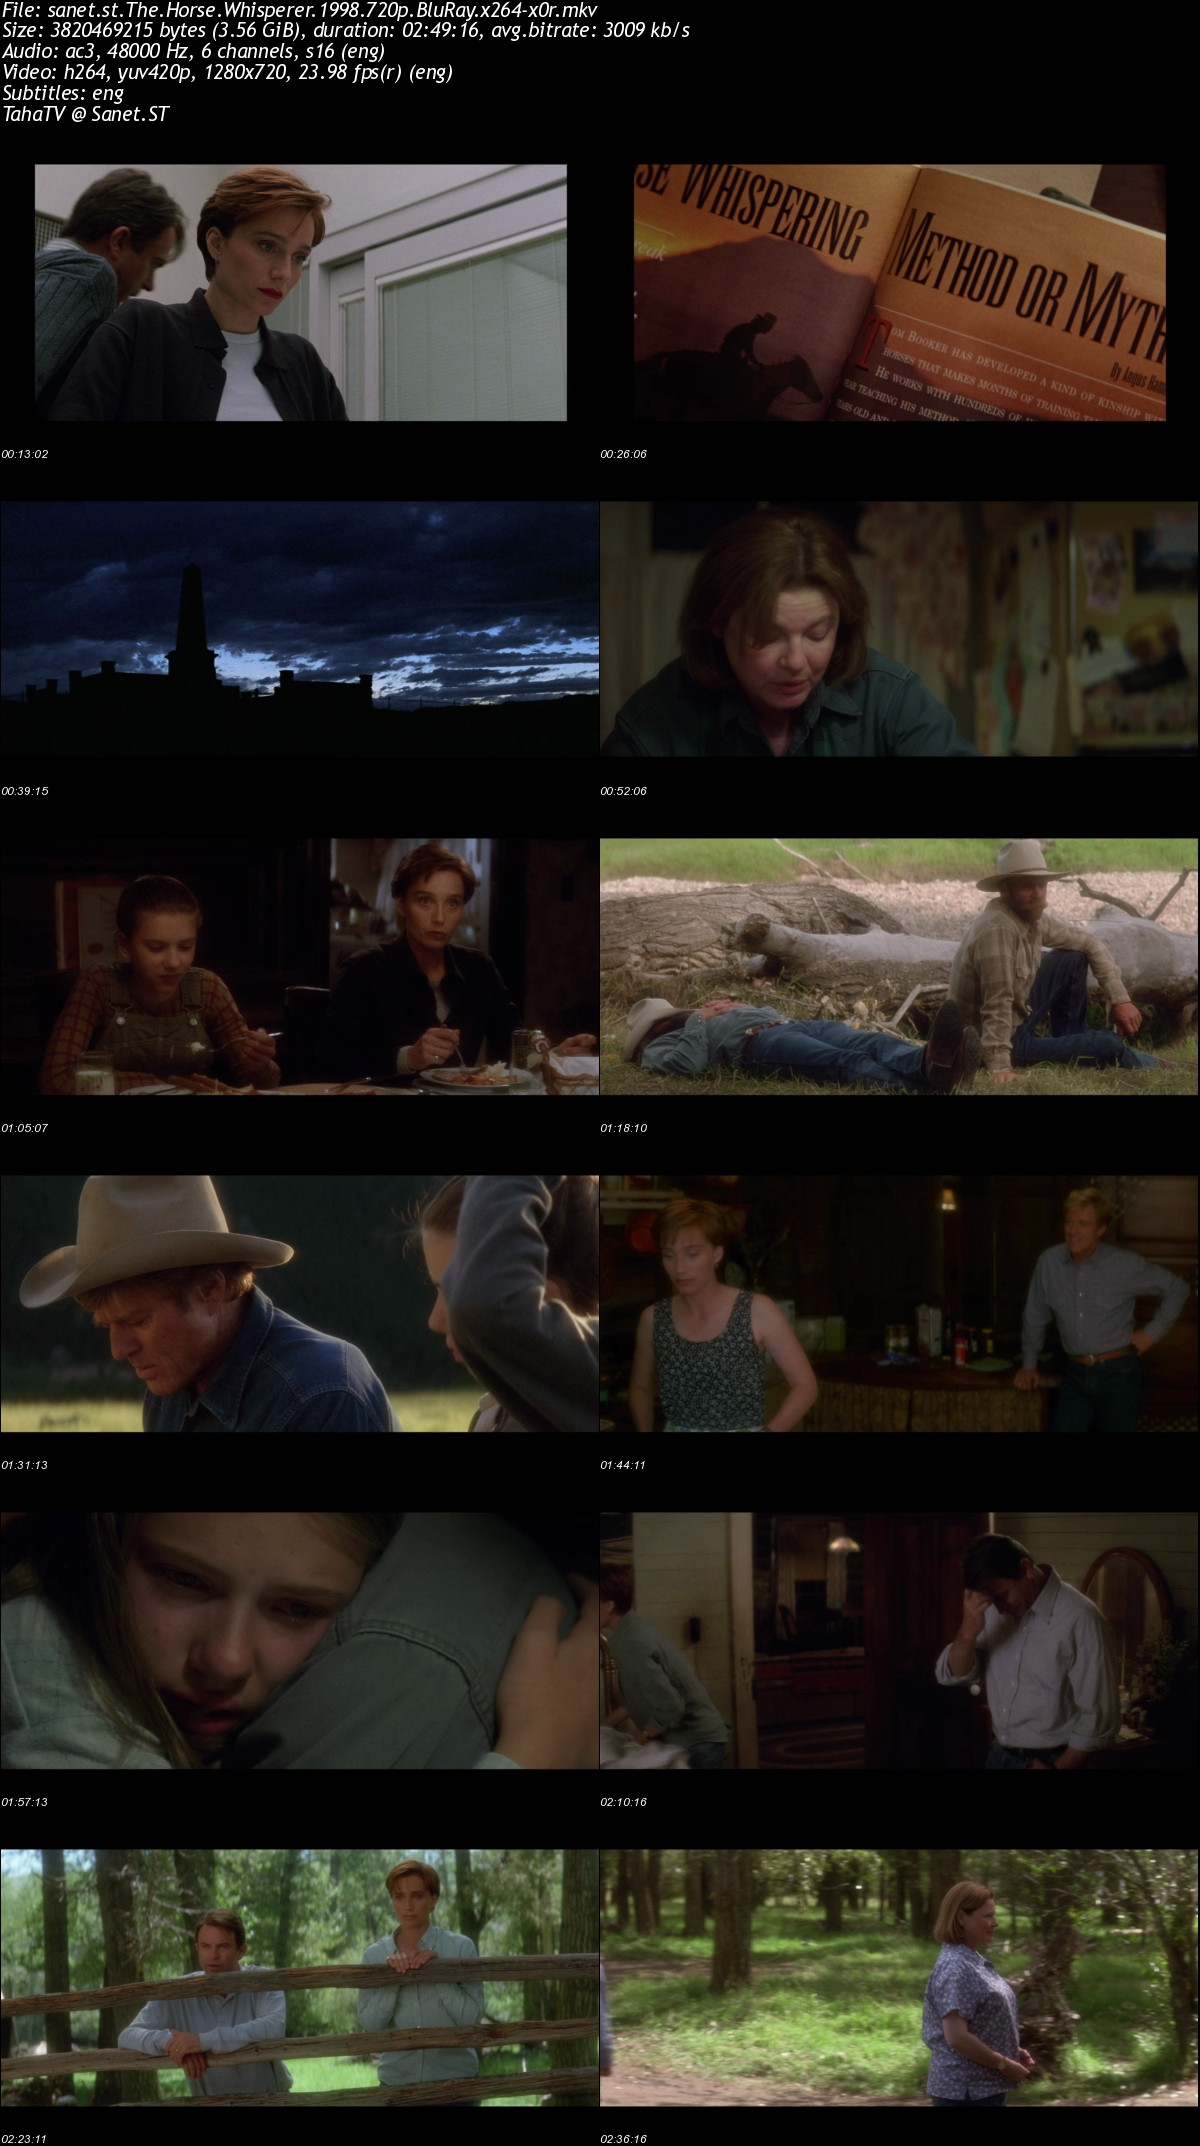 Download The Horse Whisperer 1998 720p Bluray X264 X0r Softarchive